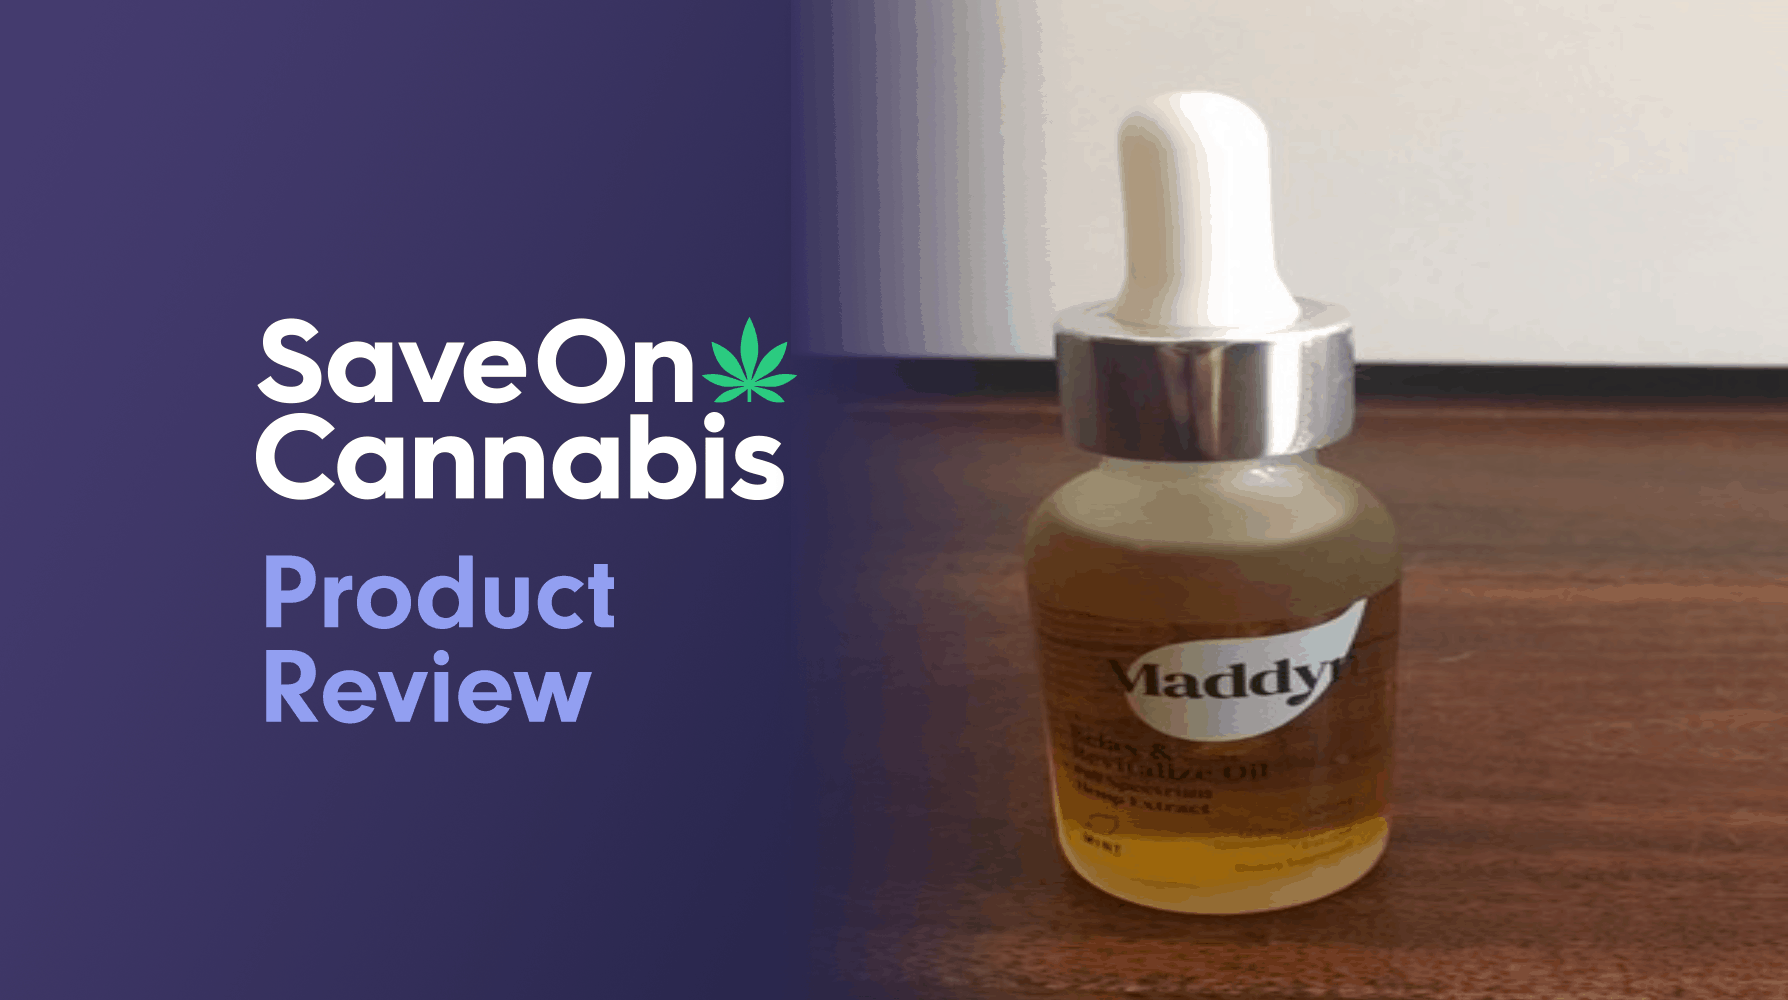 Maddyn Relax And Revitalize CBD Oil Tincture 600mg Save On Cannabis Website